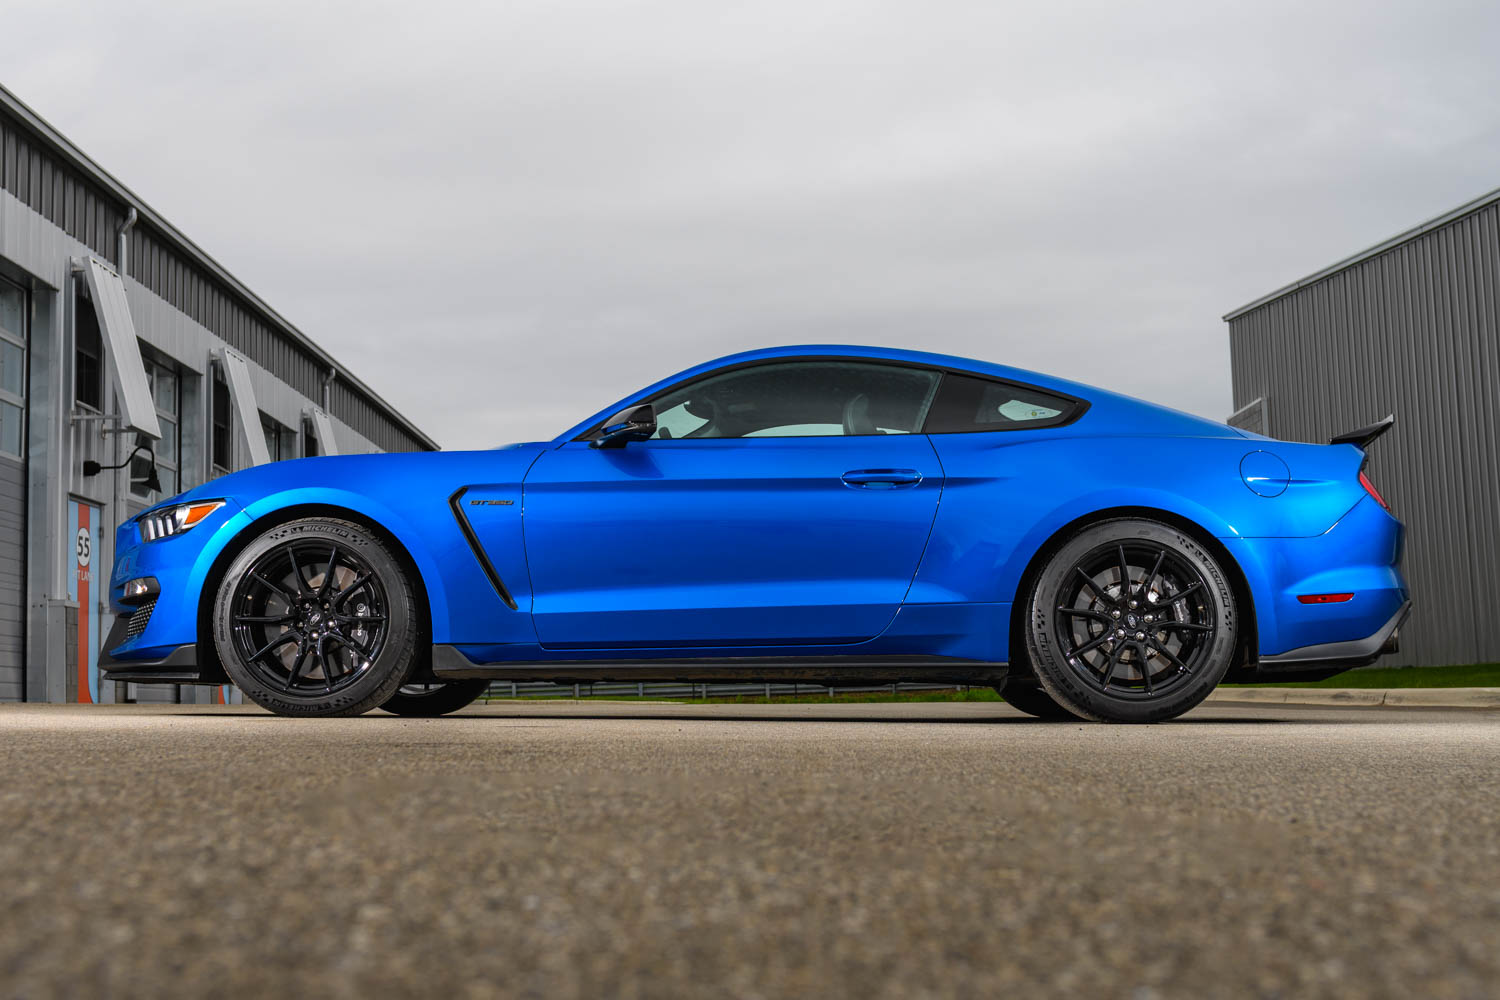 2019 Ford Mustang Shelby GT350 profile